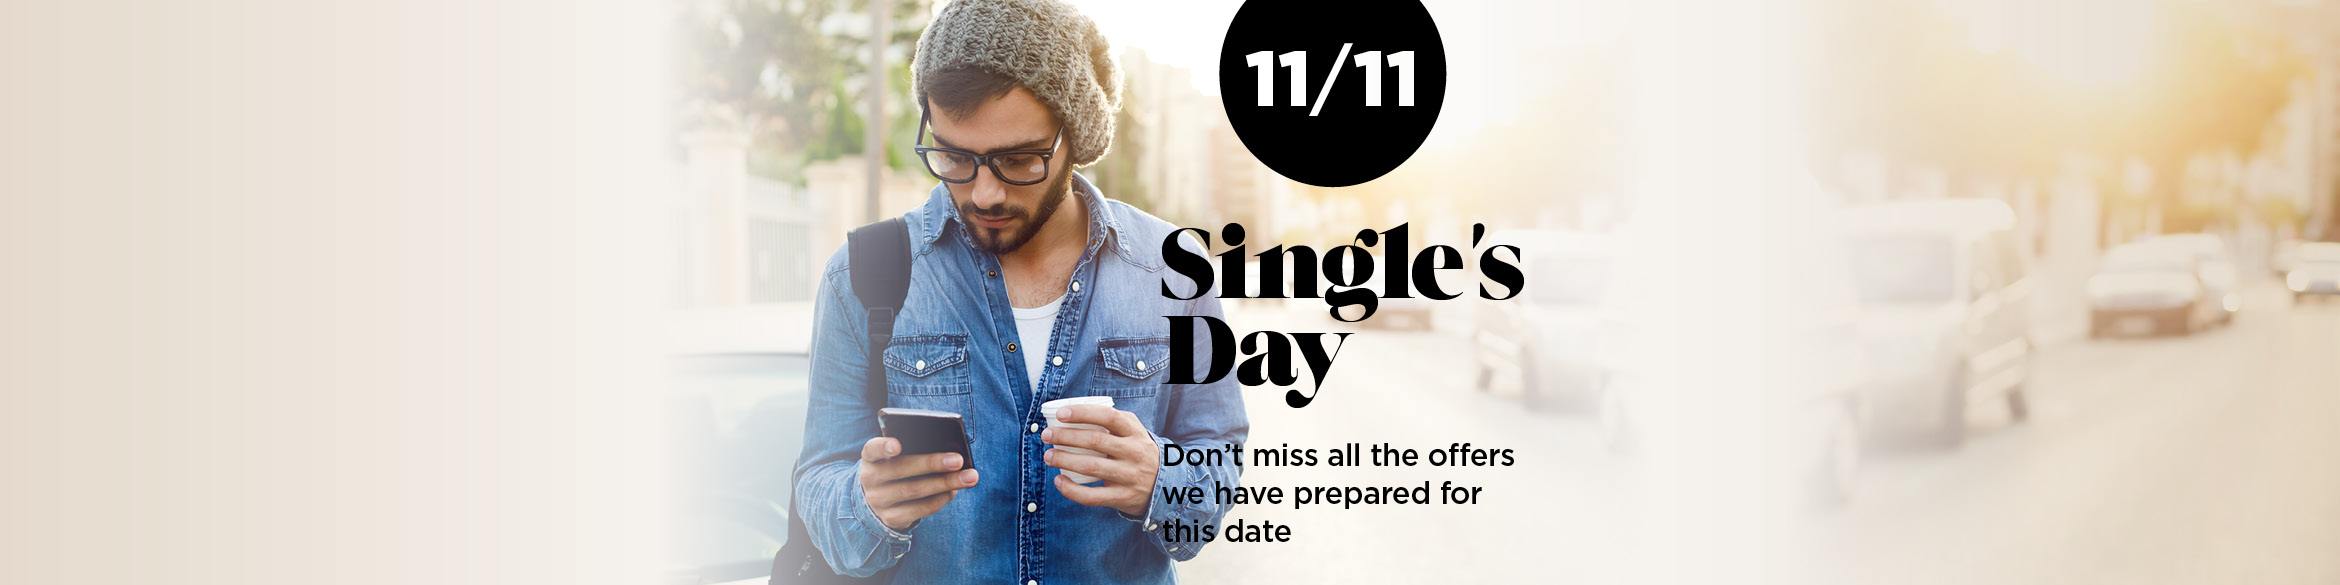 A DAY for THE BEST WHIMS: THE SINGLE'S DAY ON 11/11